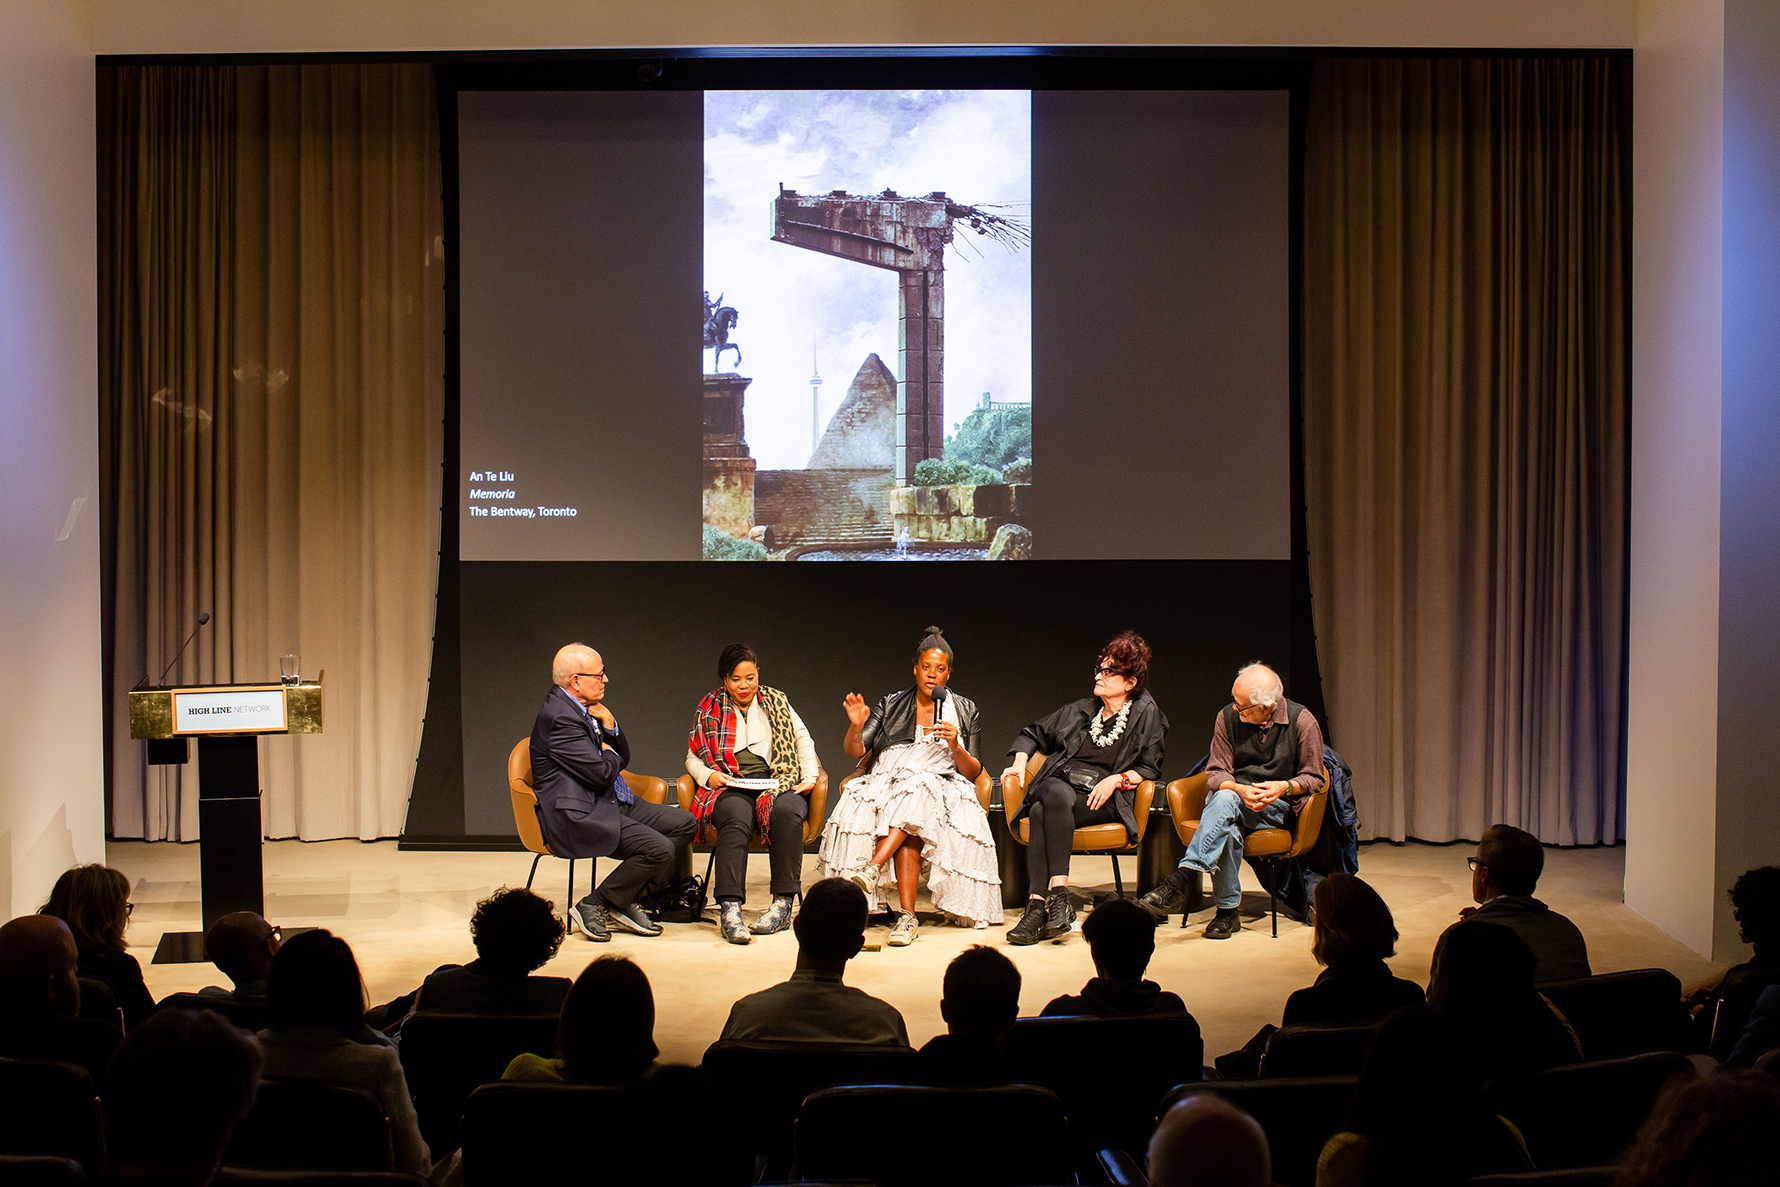 A panel discussion in front of a screen